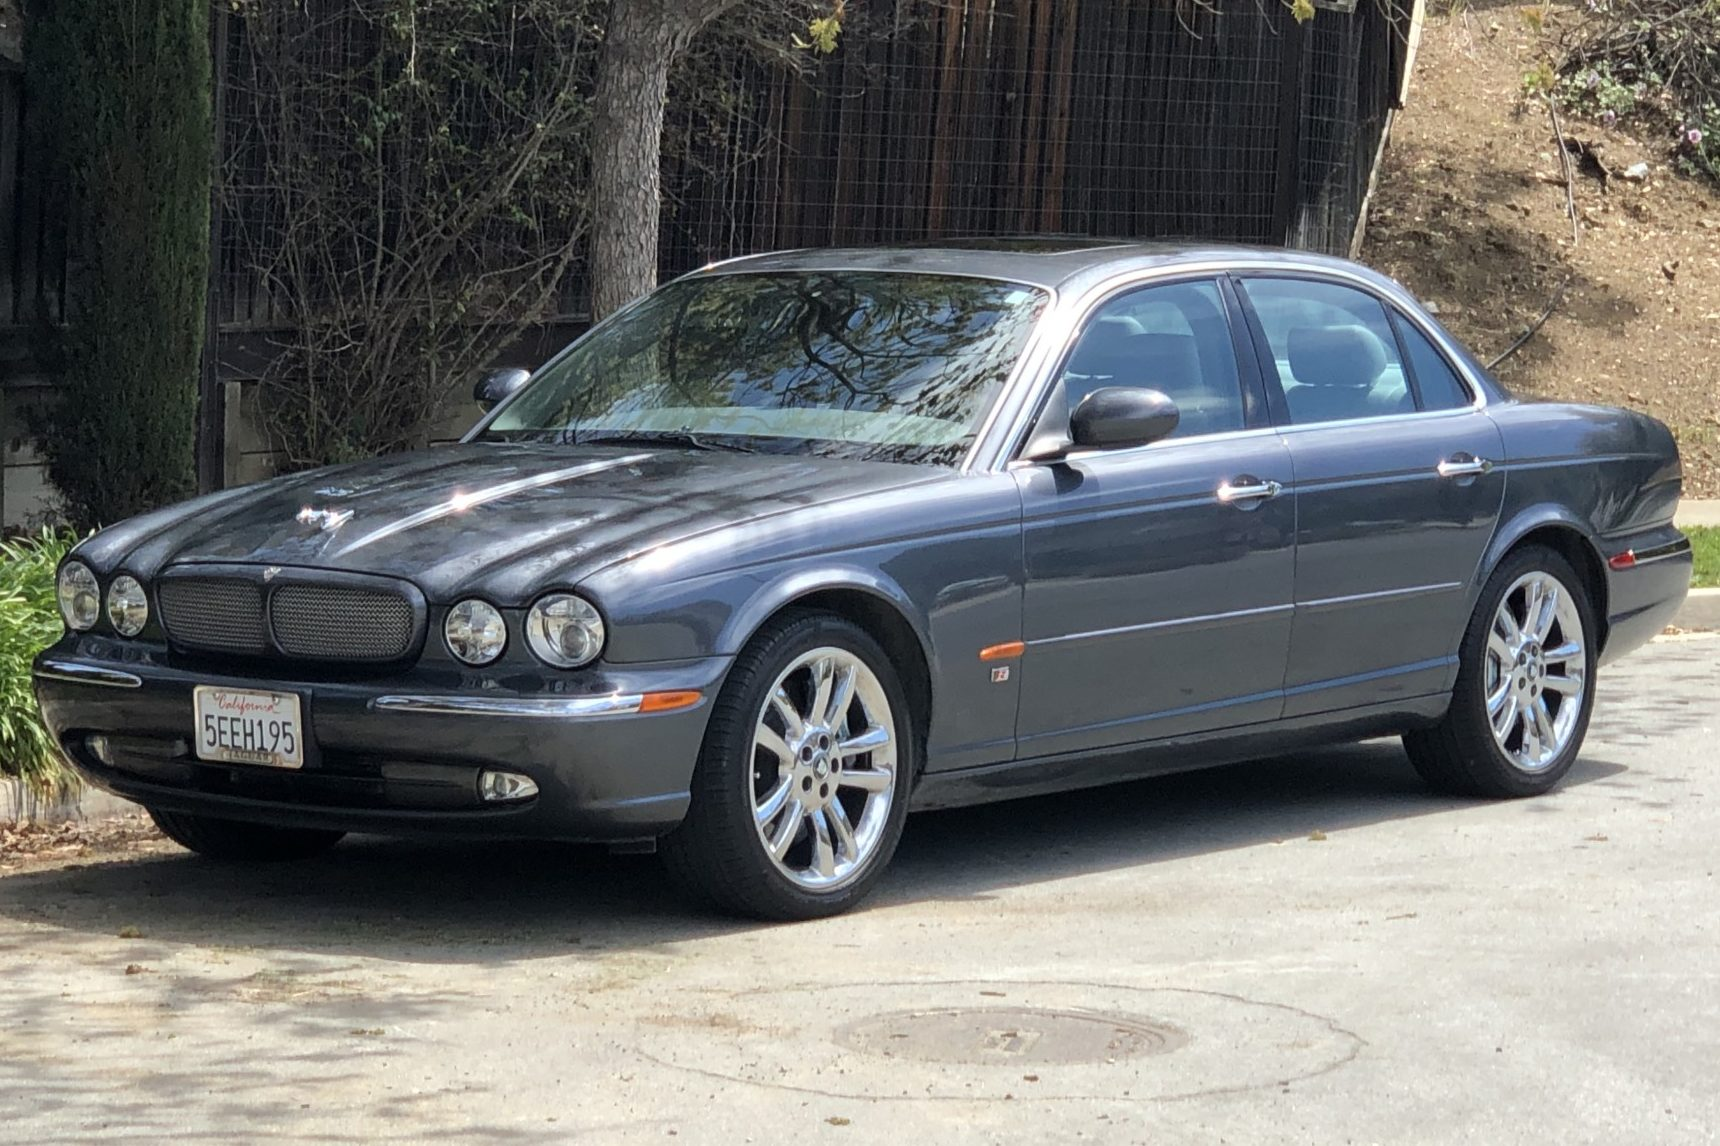 hight resolution of 36k mile 2004 jaguar xjr for sale on bat auctions sold for 16 250 on may 9 2019 lot 18 682 bring a trailer